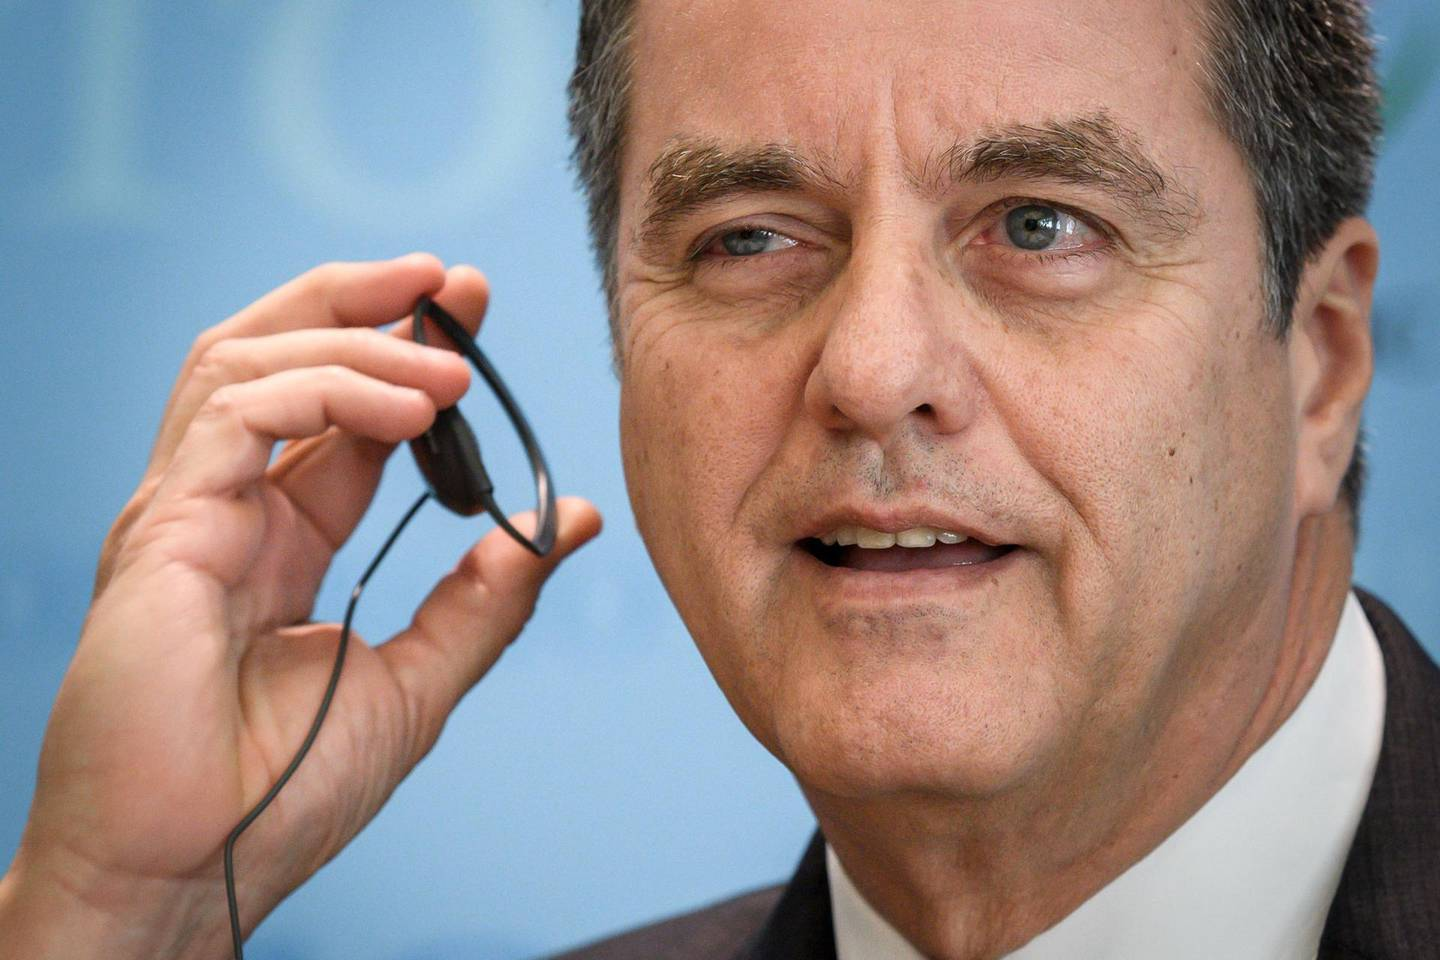 World Trade Organization (WTO) director-general Roberto Azevedo adjusts his earphone as he gives a press conference on April 12, 2018 at their headquarters in Geneva. The World Trade Organization releases today its latest forecasts as trade tensions between the United States and China ratchet up. / AFP PHOTO / Fabrice COFFRINI